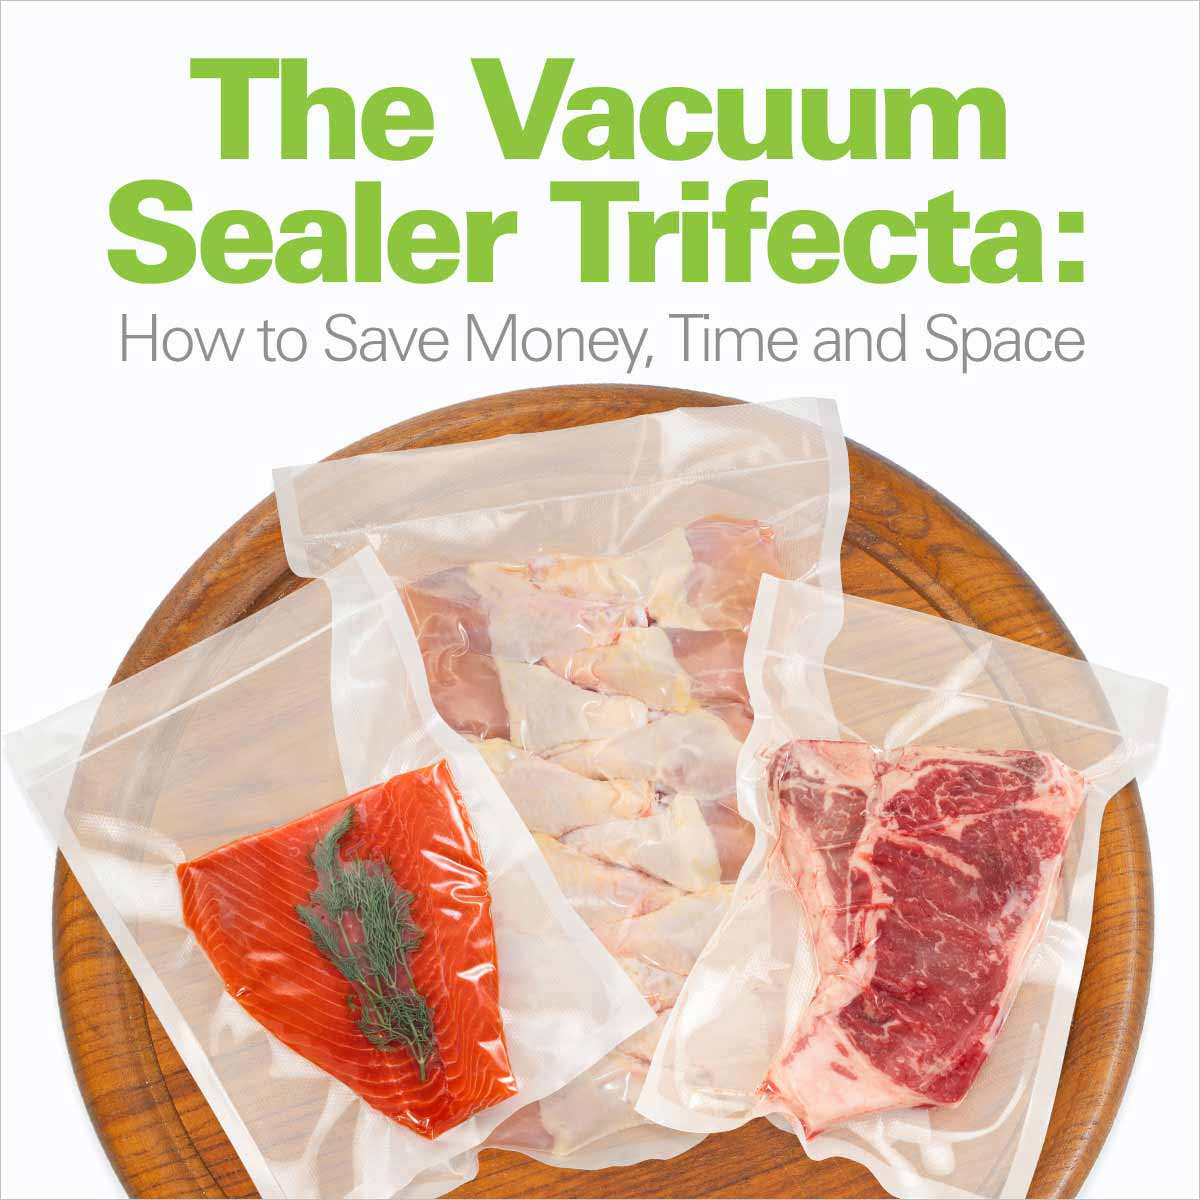 Mobile - The Vacuum Sealer Trifecta: How to Save